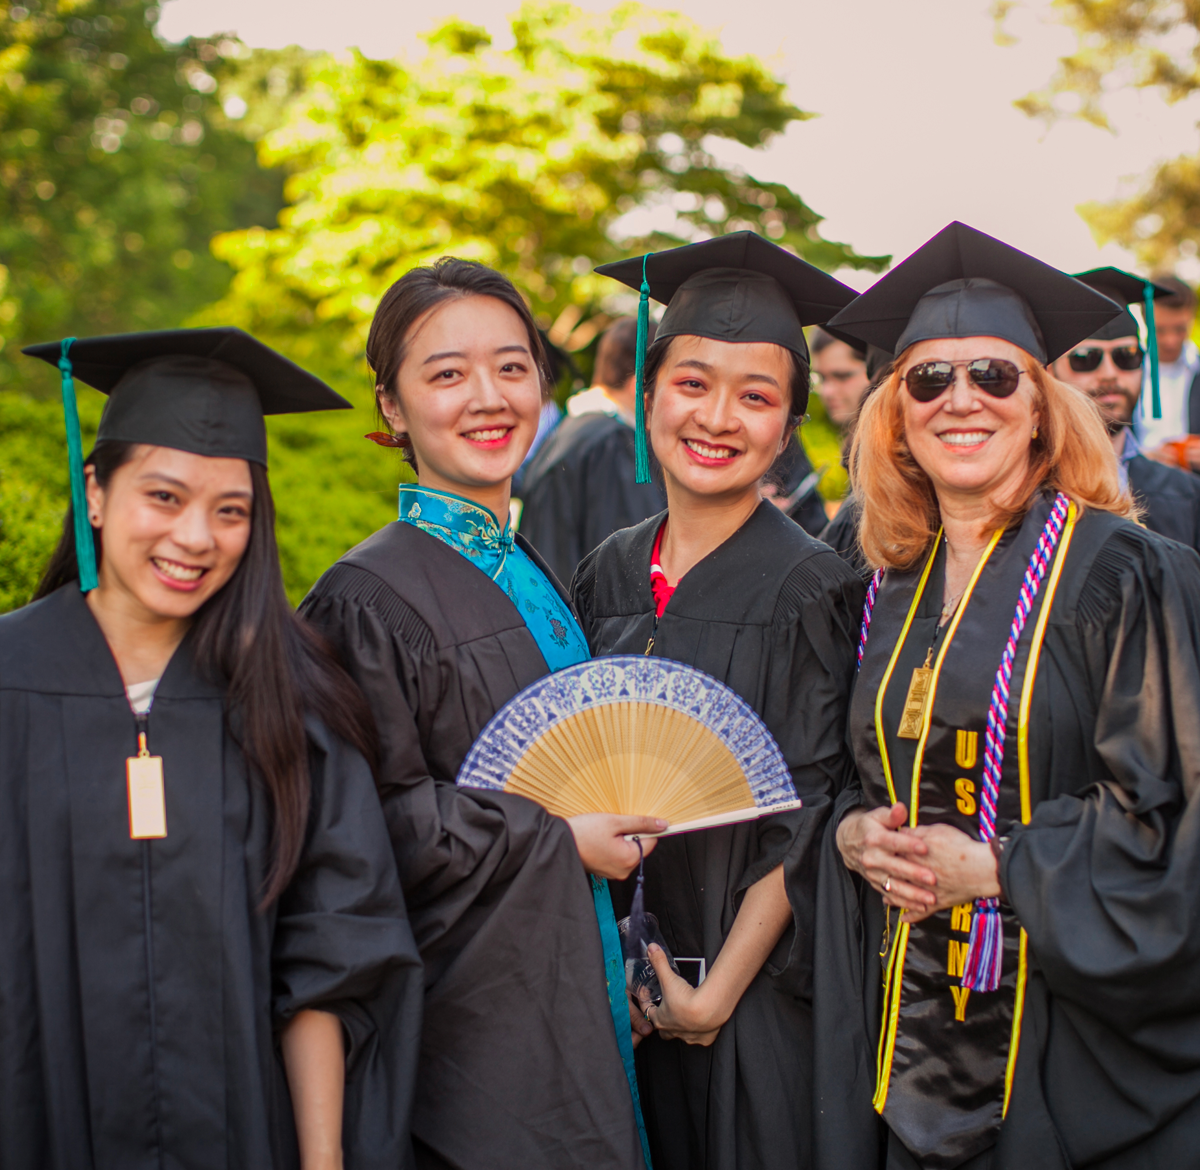 Four women dressed for graduation, one holding a fan